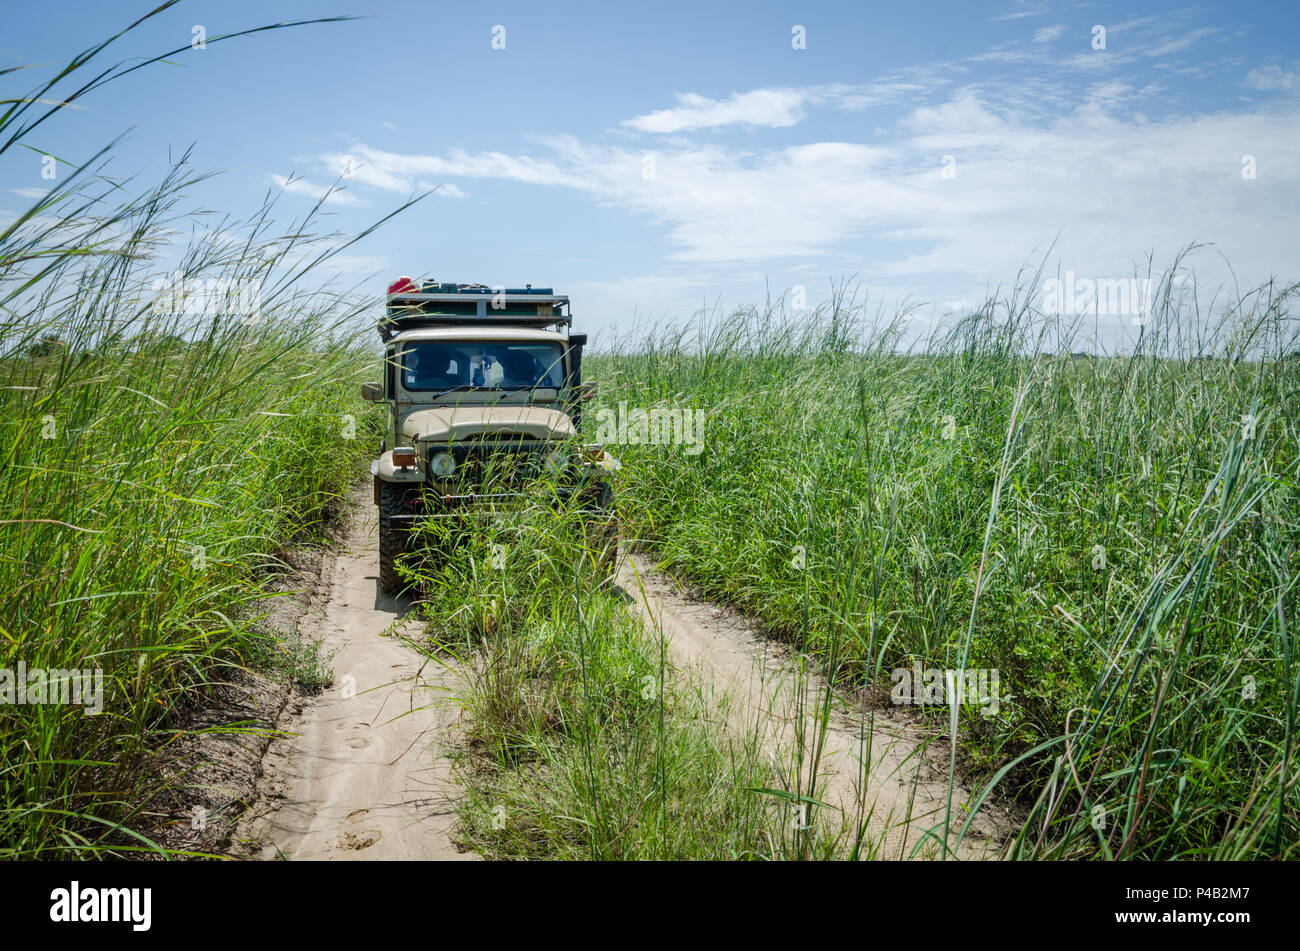 Classic 4x4 offroad car on overgrown track with high grass between Ambriz and Luanda in Northern Angola, Africa. - Stock Image